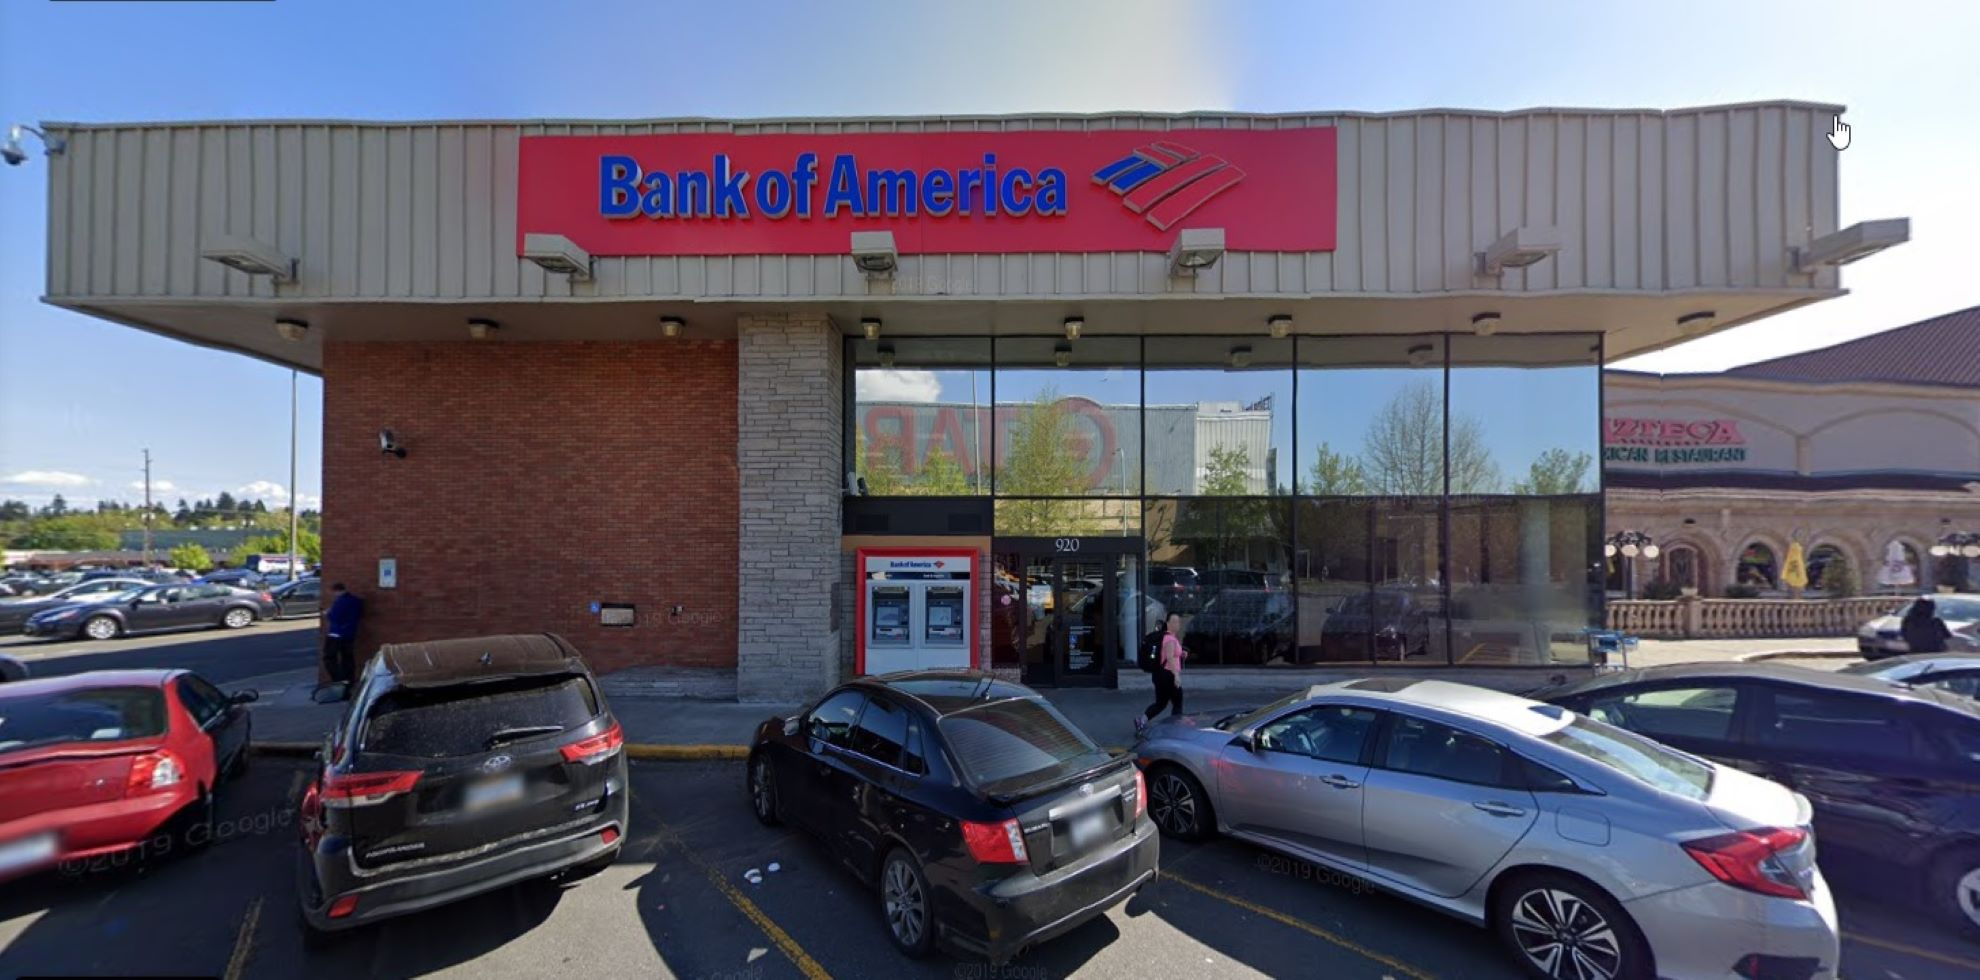 Bank of America financial center with walk-up ATM   401 NE Northgate Way SPC 920, Seattle, WA 98125